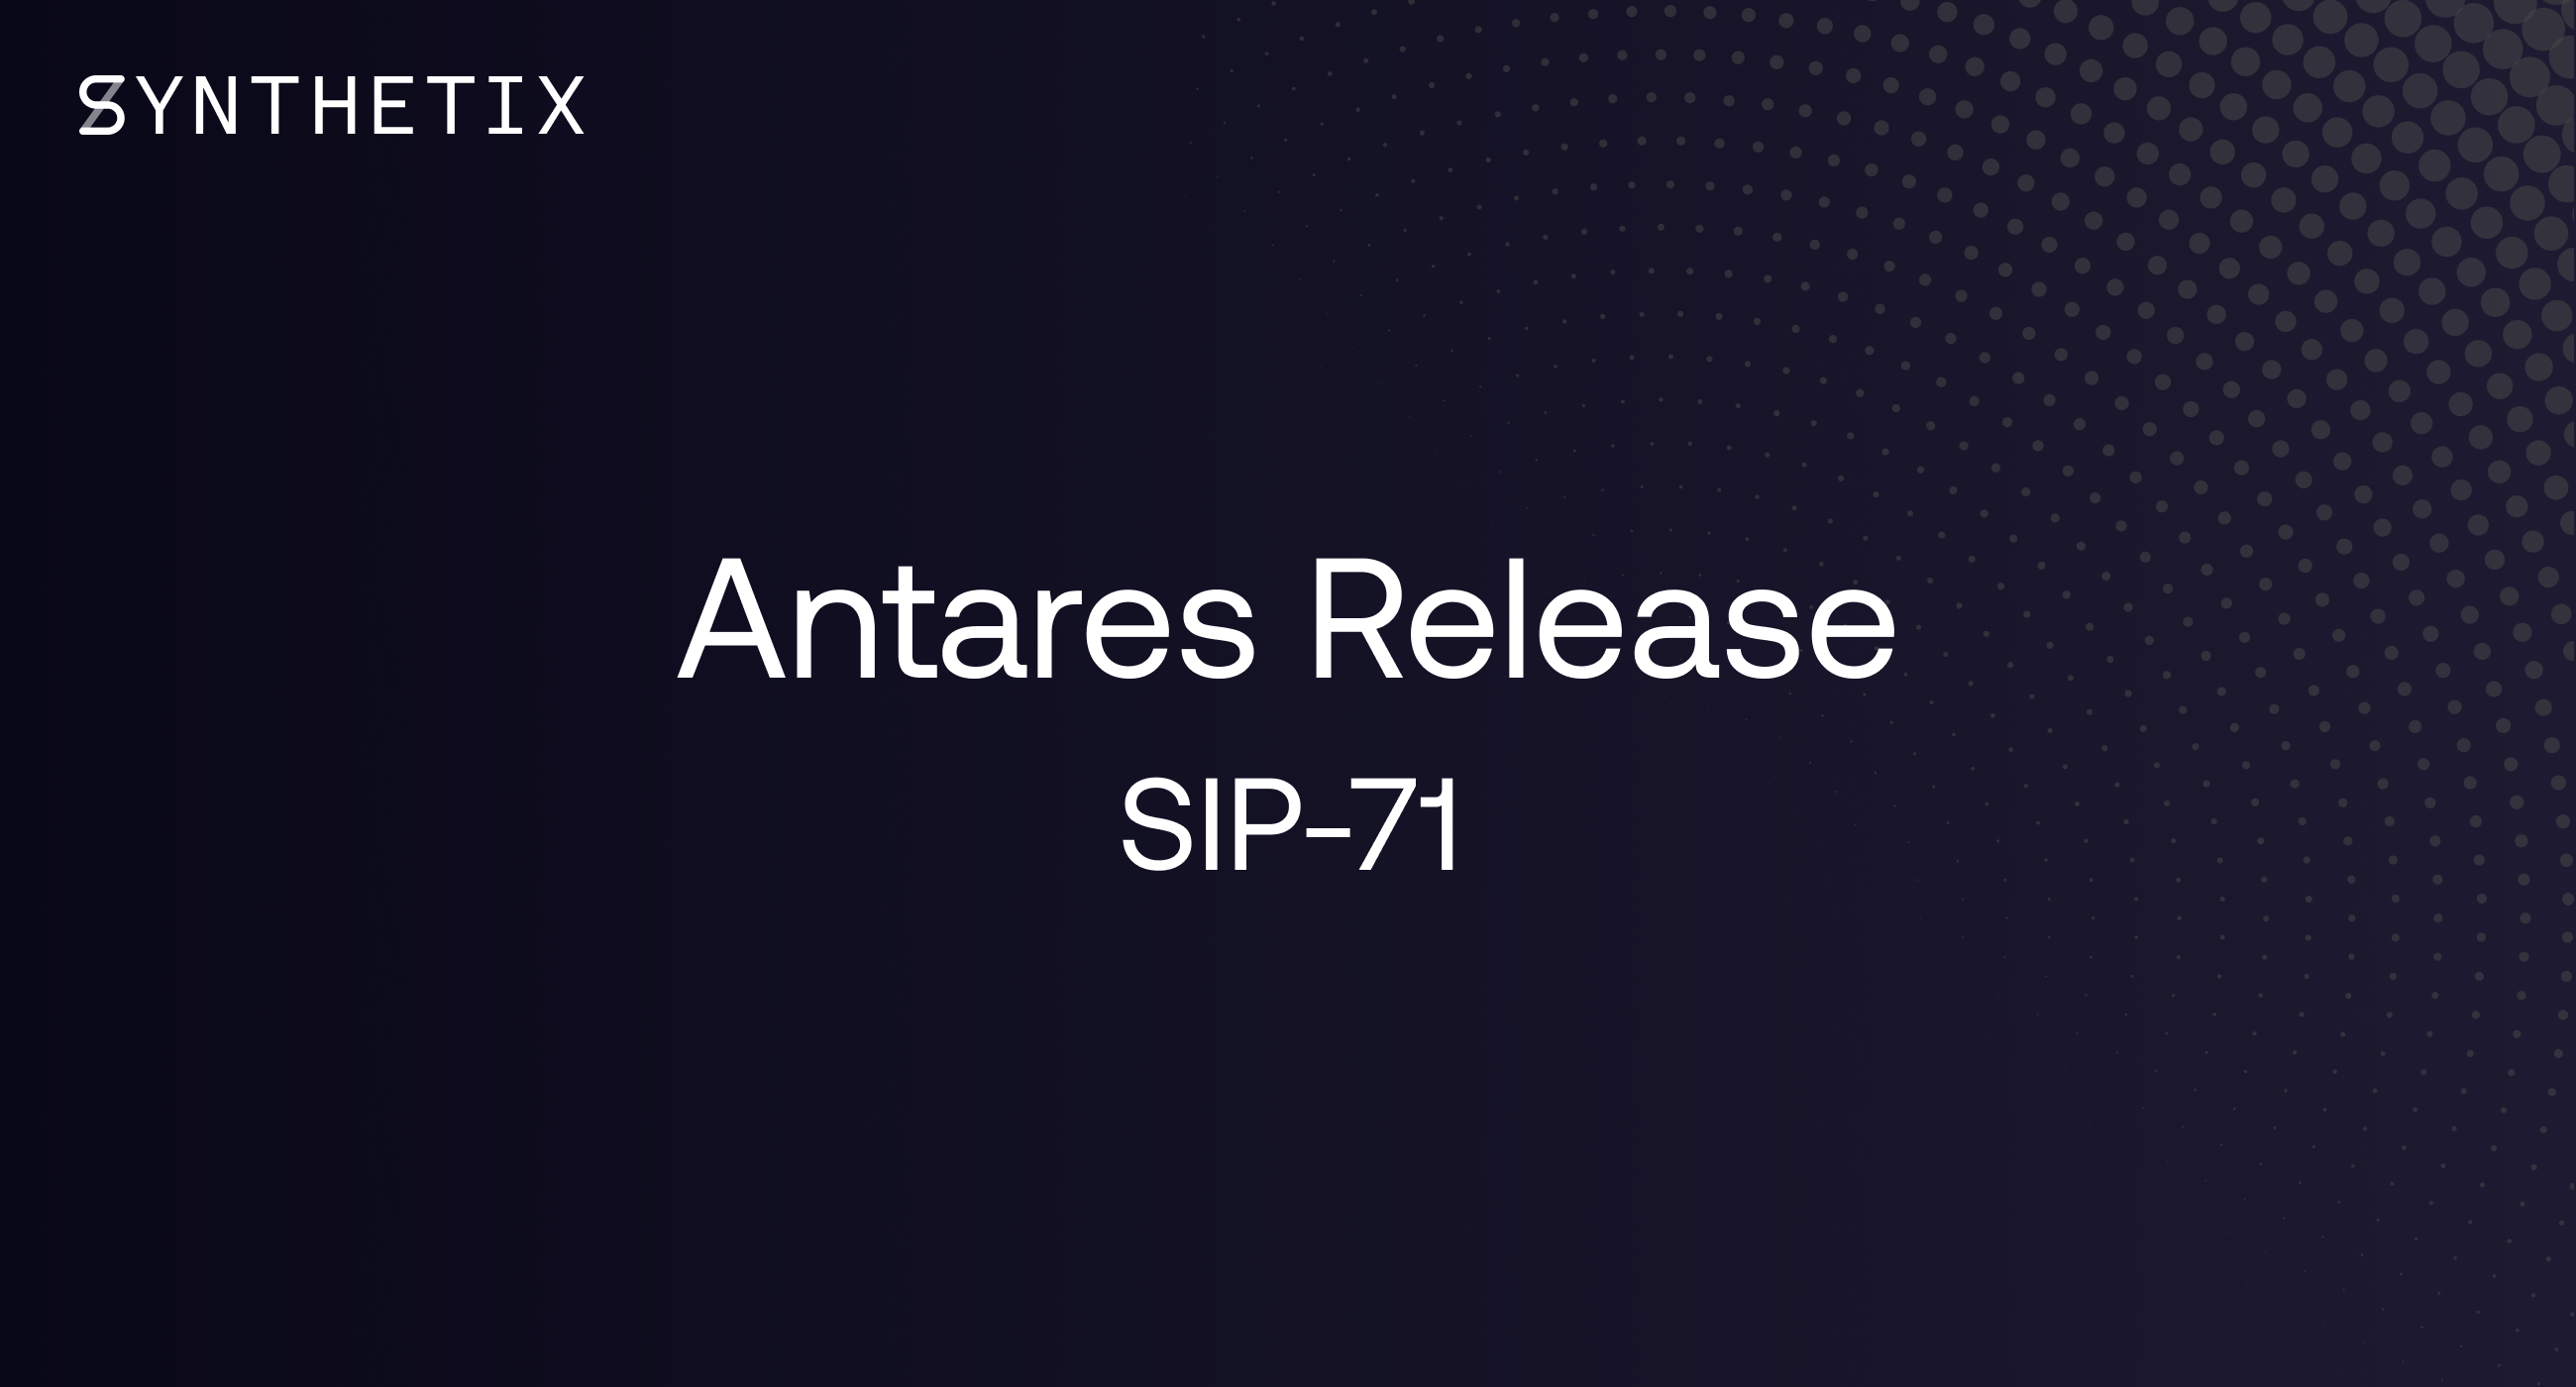 The Antares release